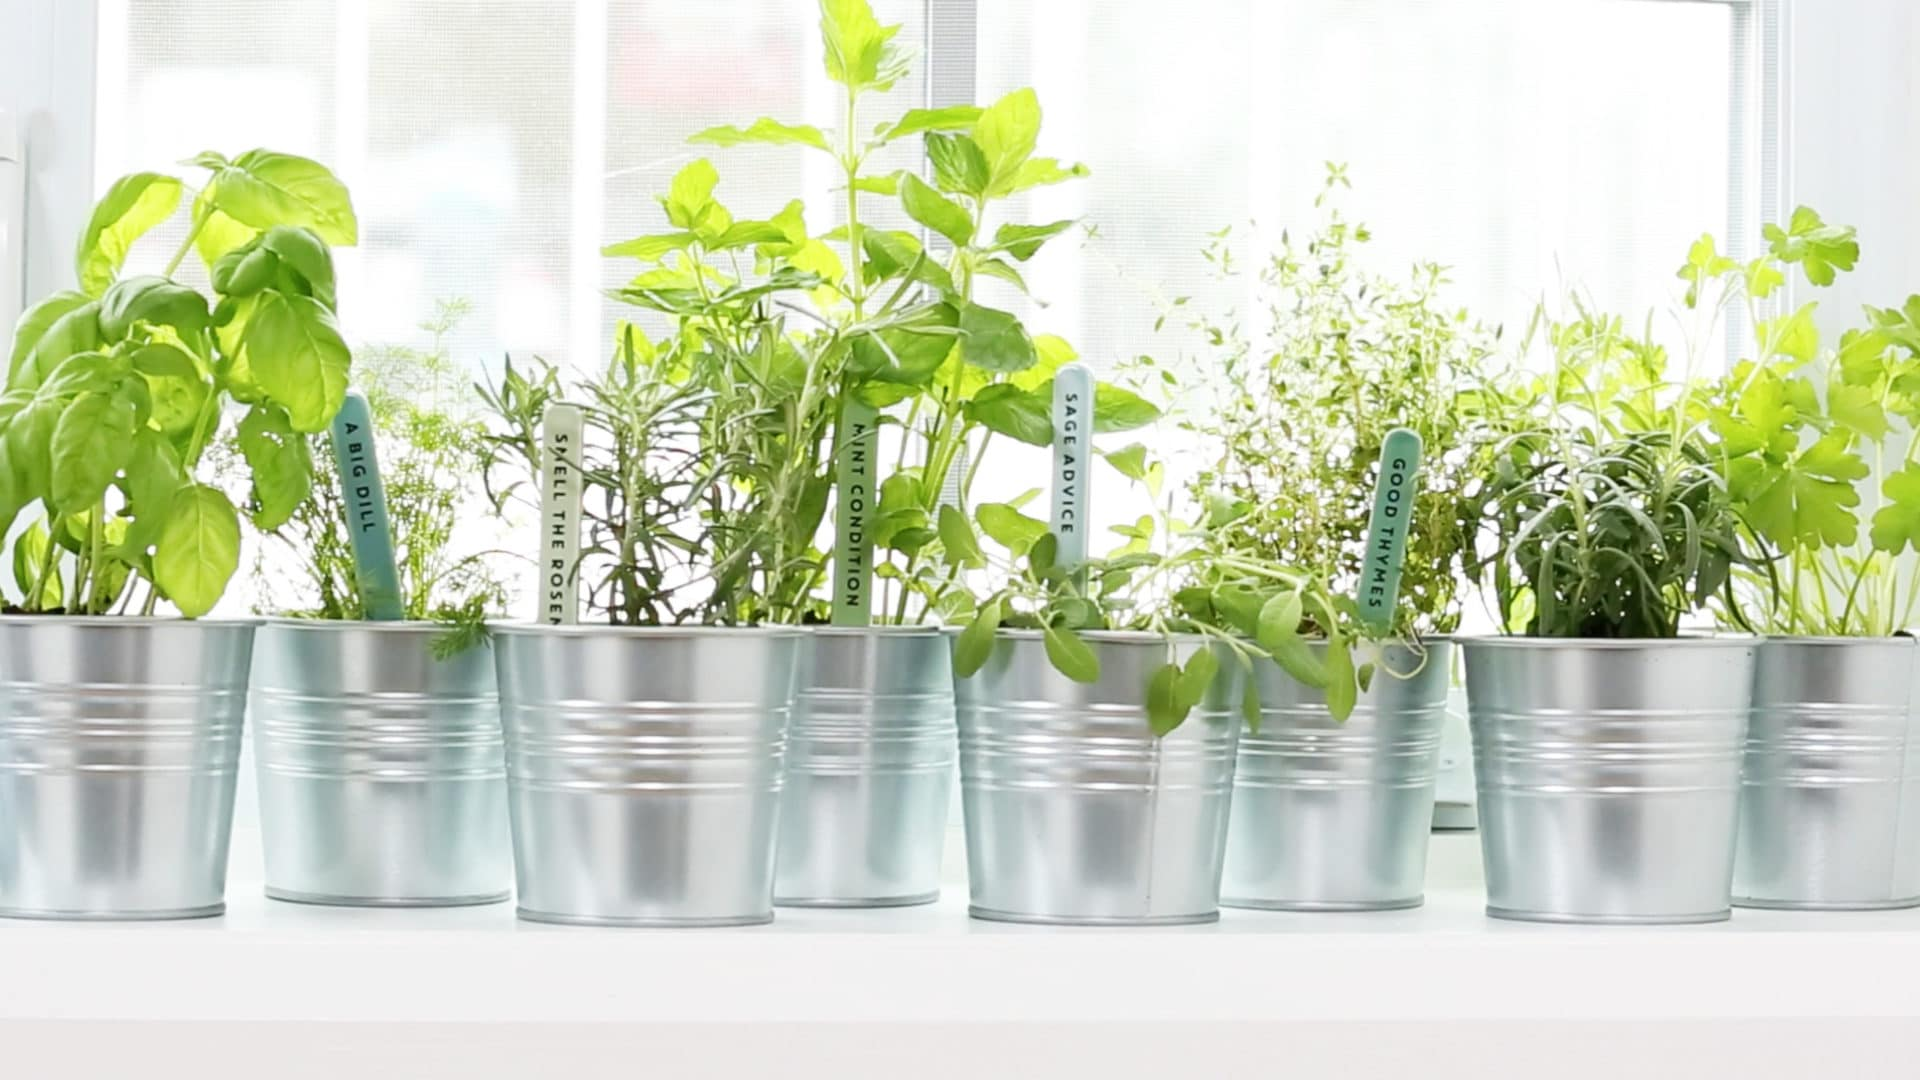 Potted Fresh Herbs on Window Sill